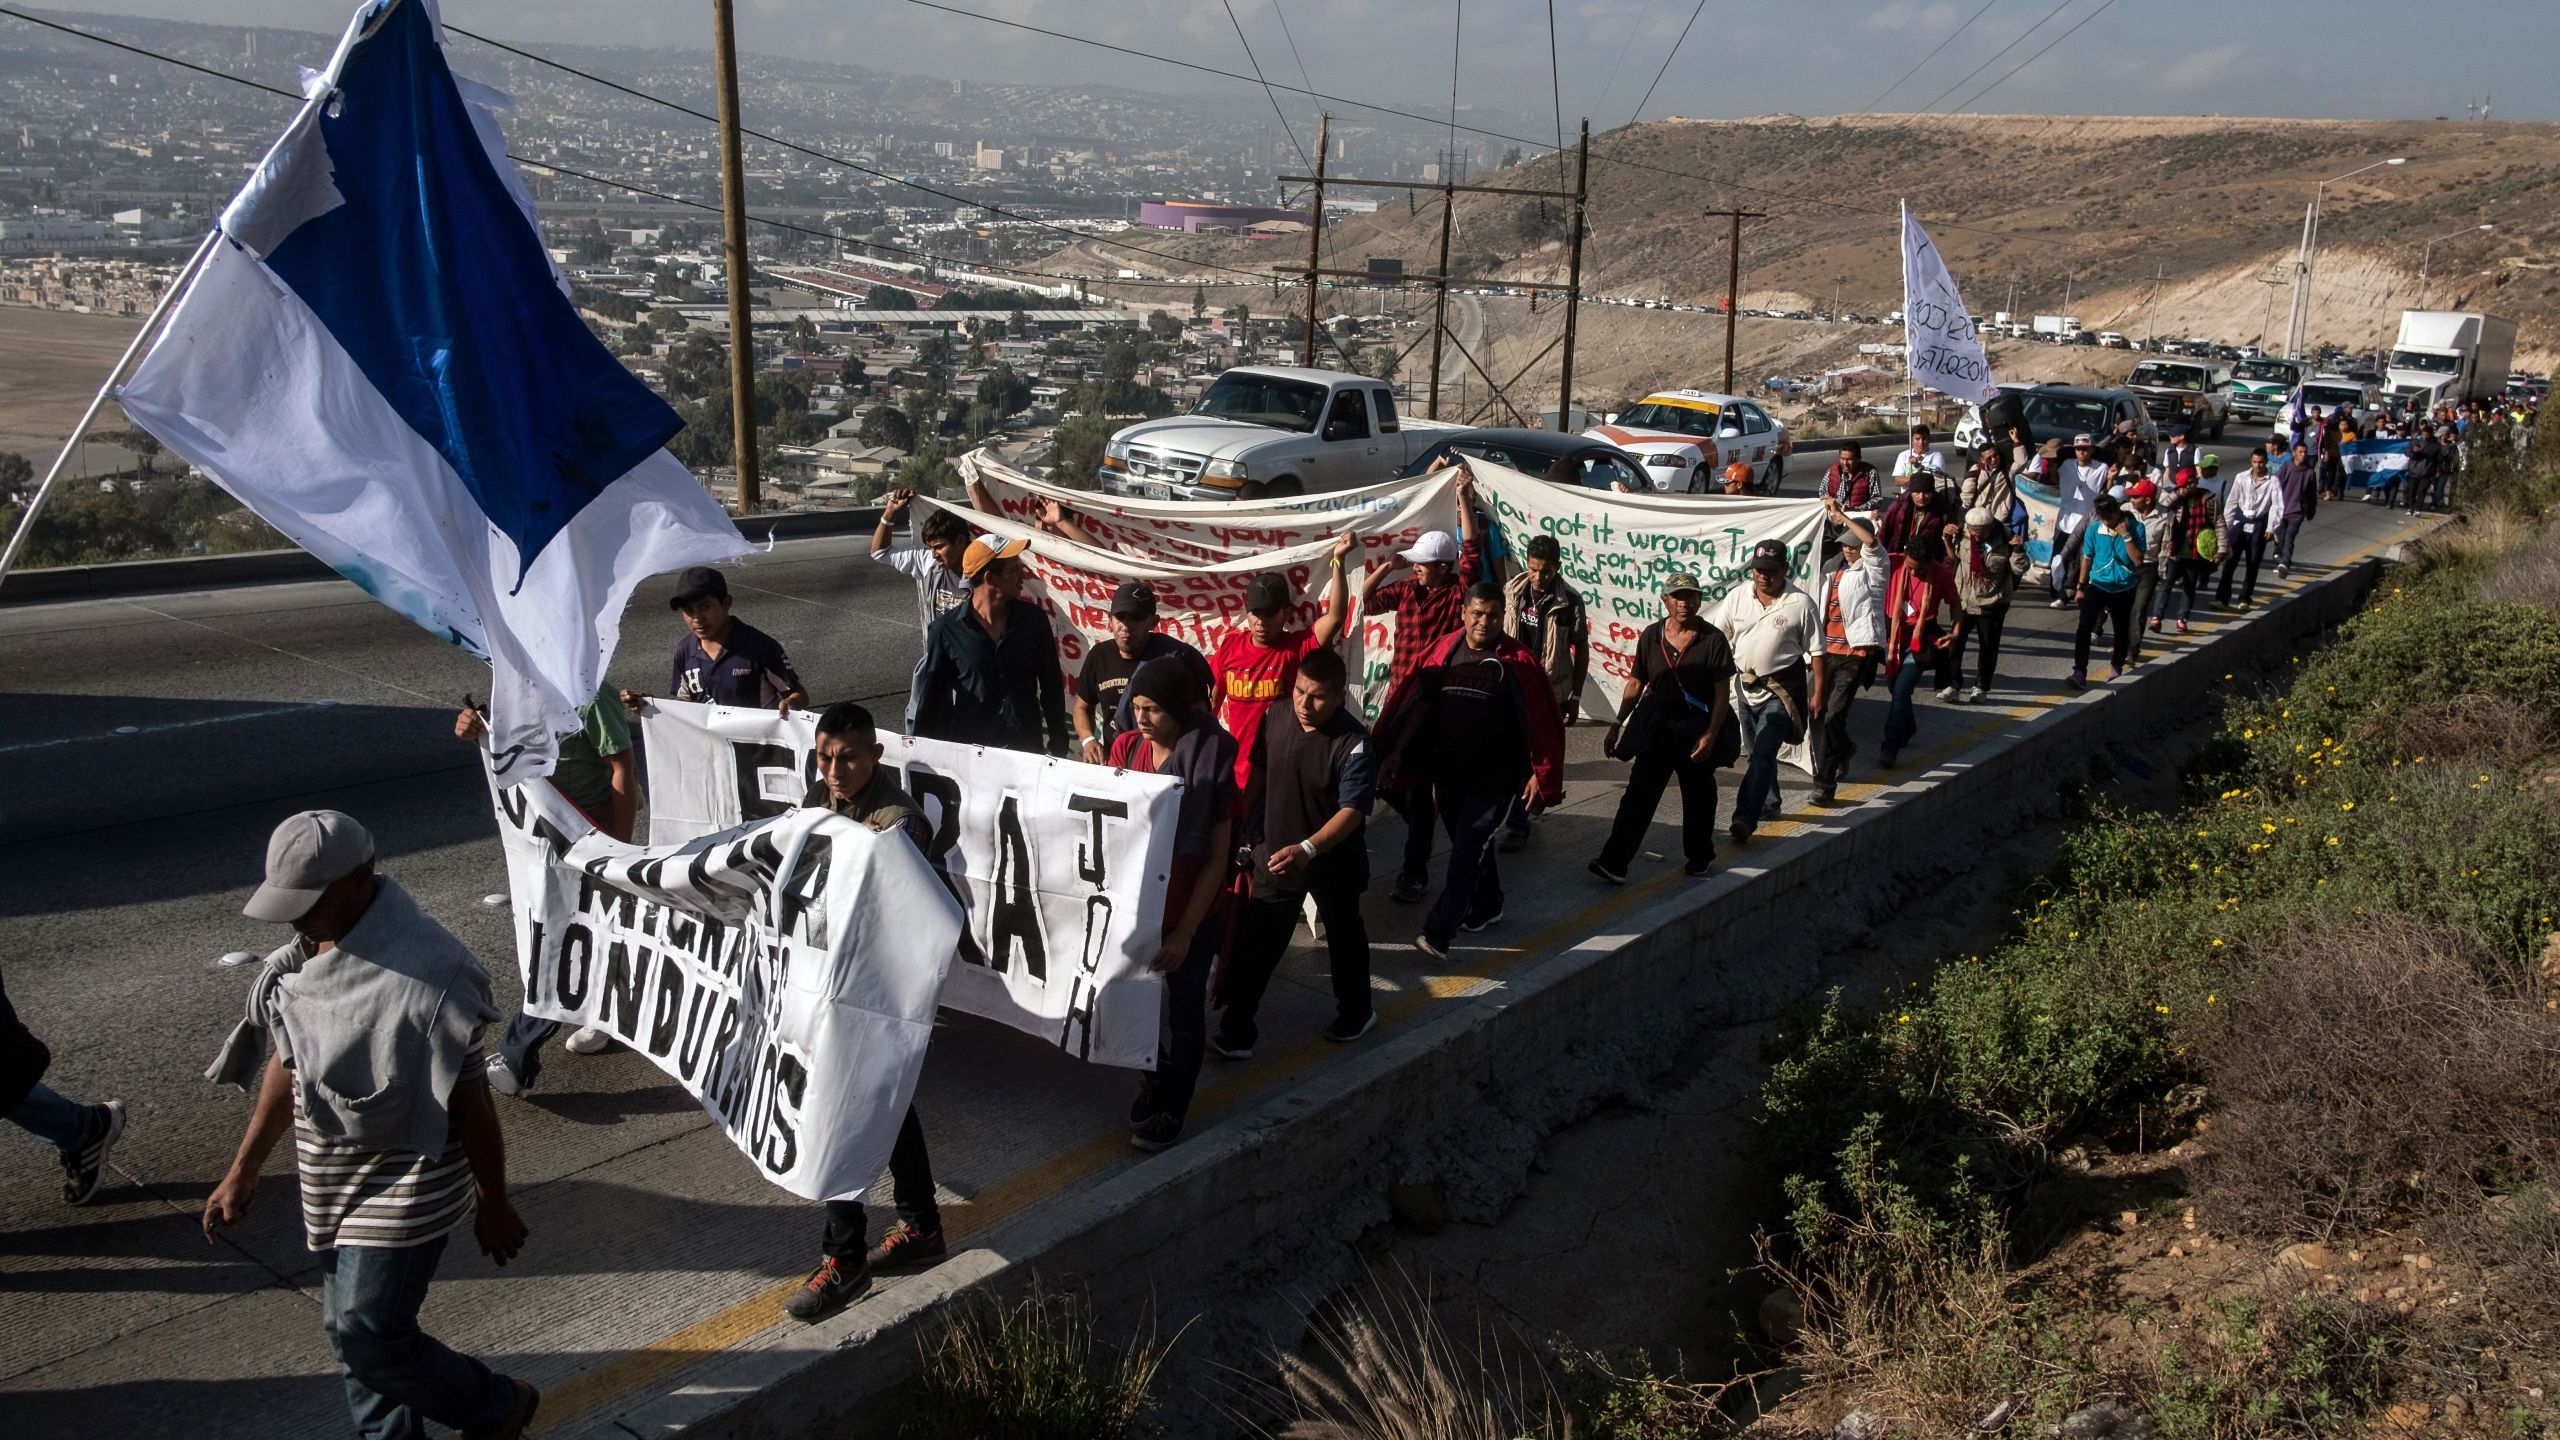 A group of Central American migrants take part in a demonstration march heading to the US Consulate to deliver a petition, in Tijuana, Baja California state, Mexico on December 11, 2018. - (Credit: GUILLERMO ARIAS/AFP/Getty Images)